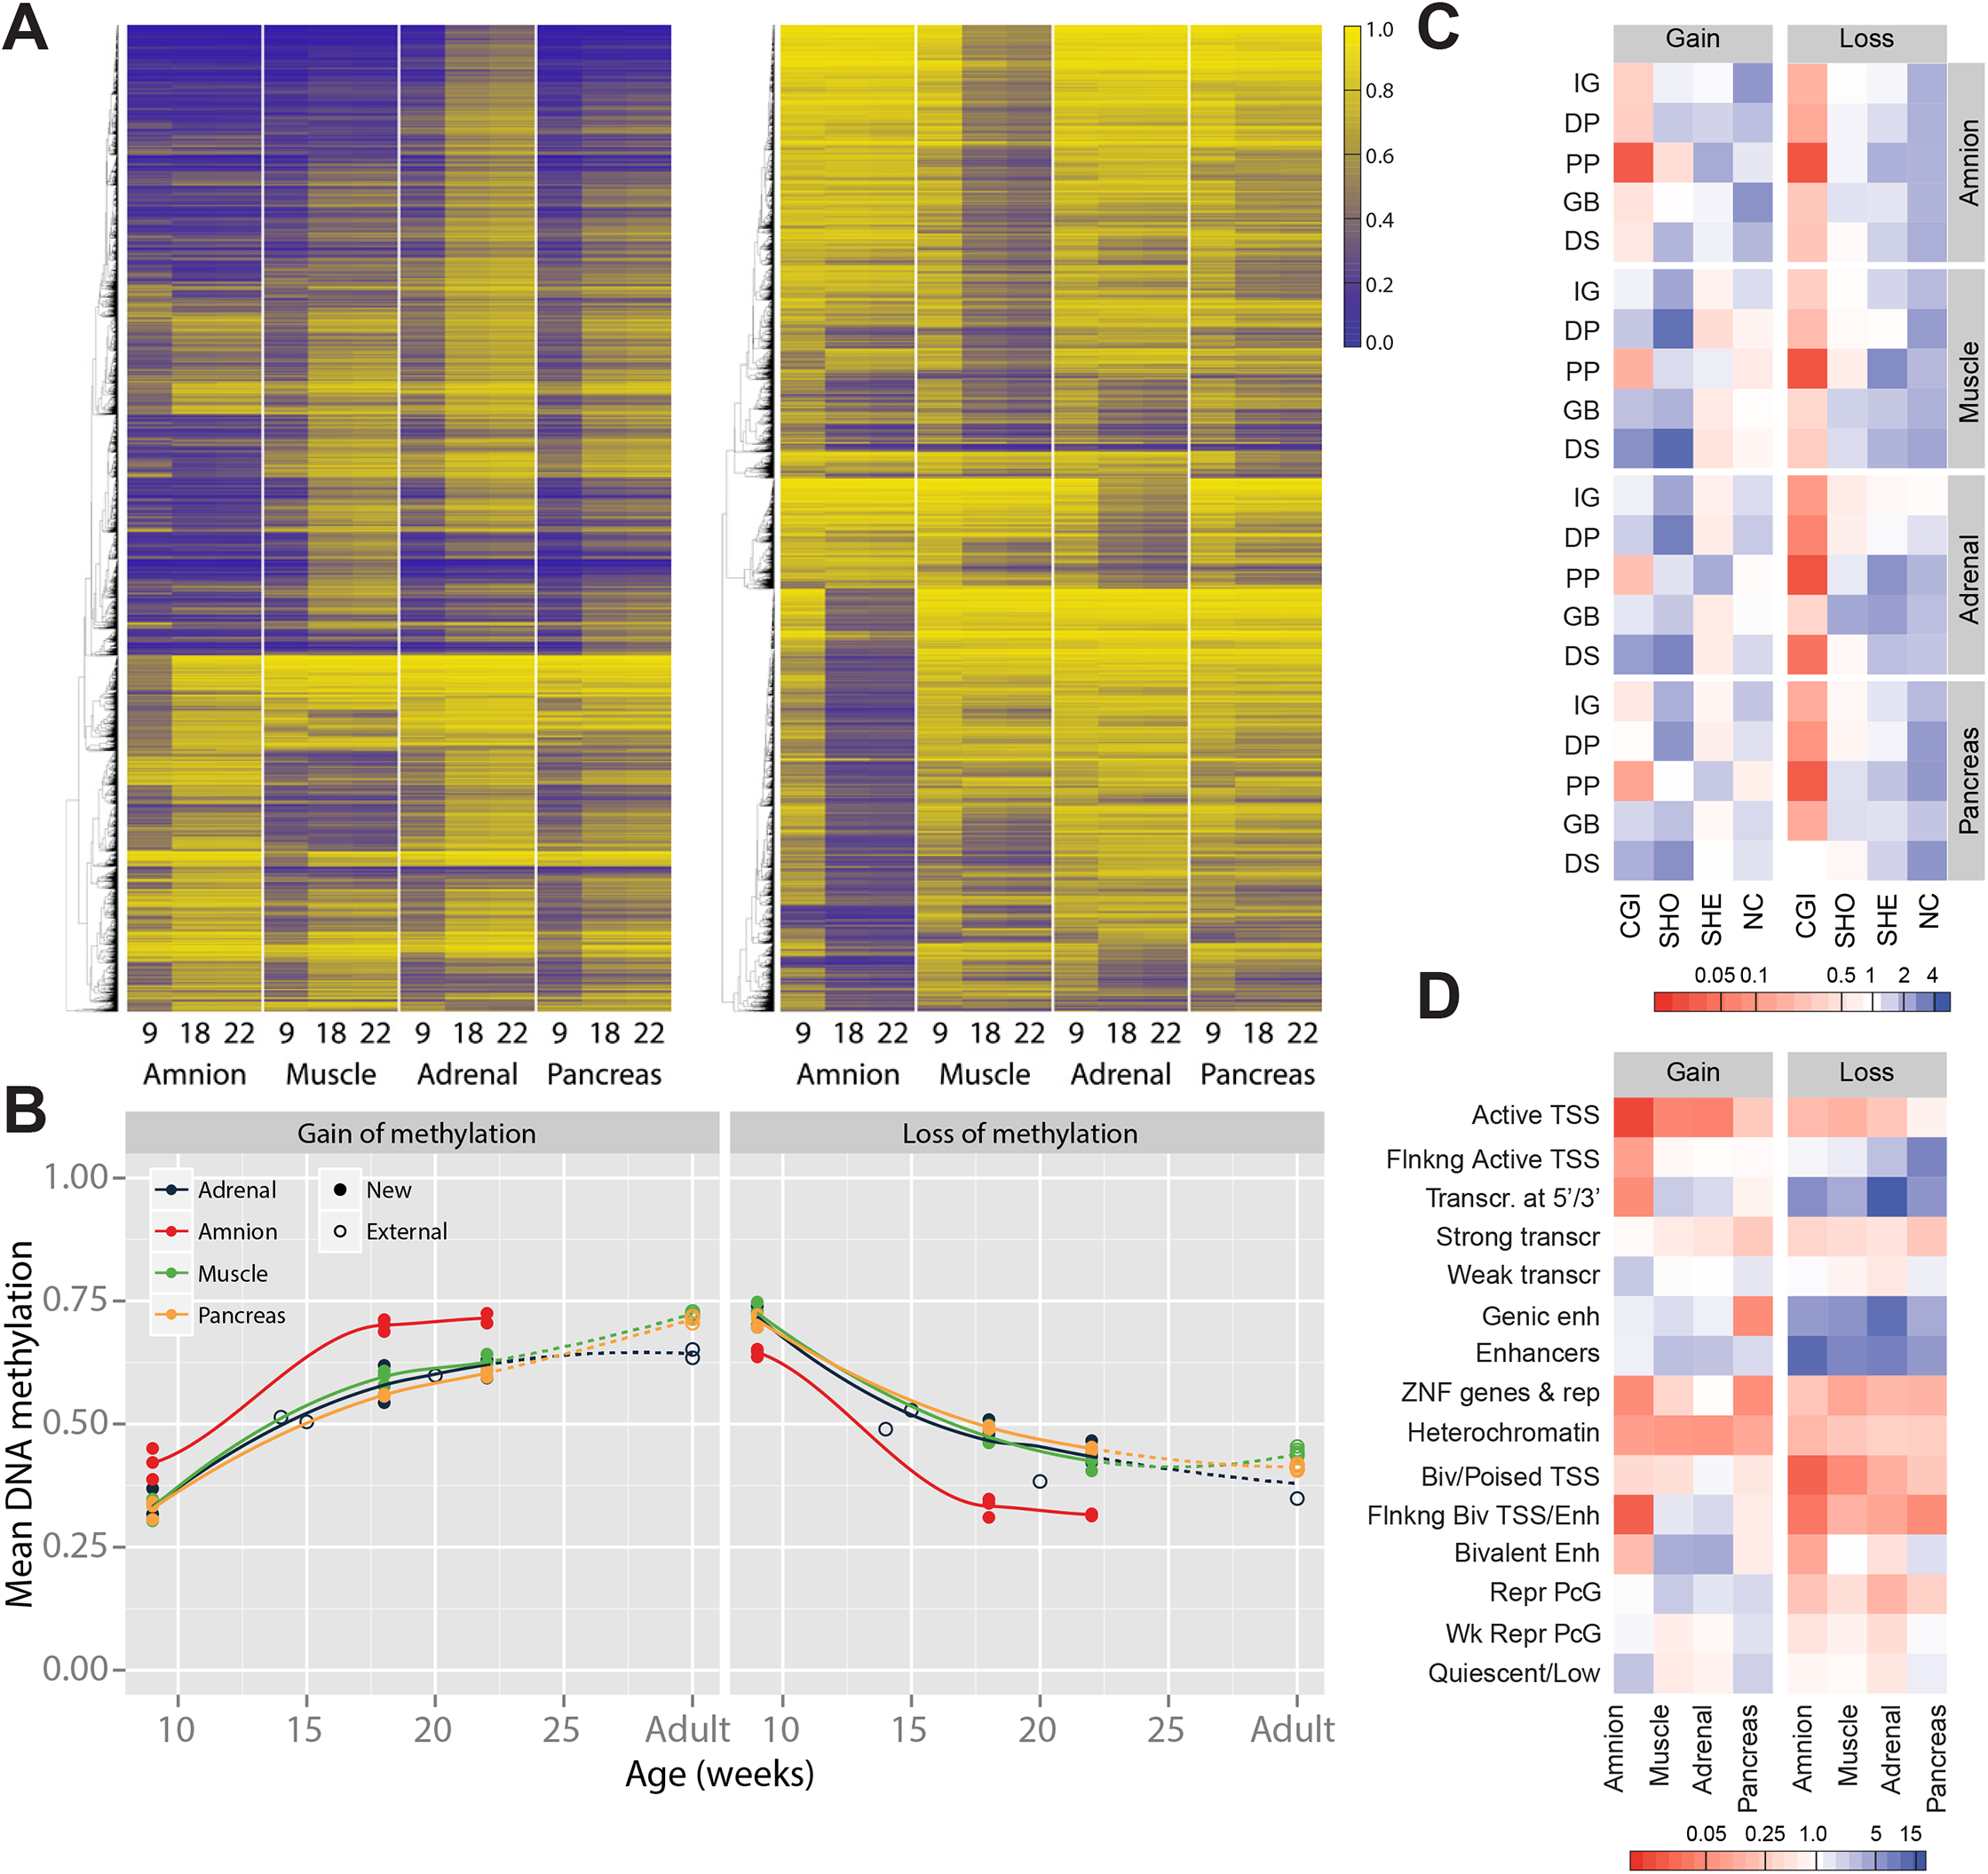 Gain and loss of DNA methylation during human fetal development.